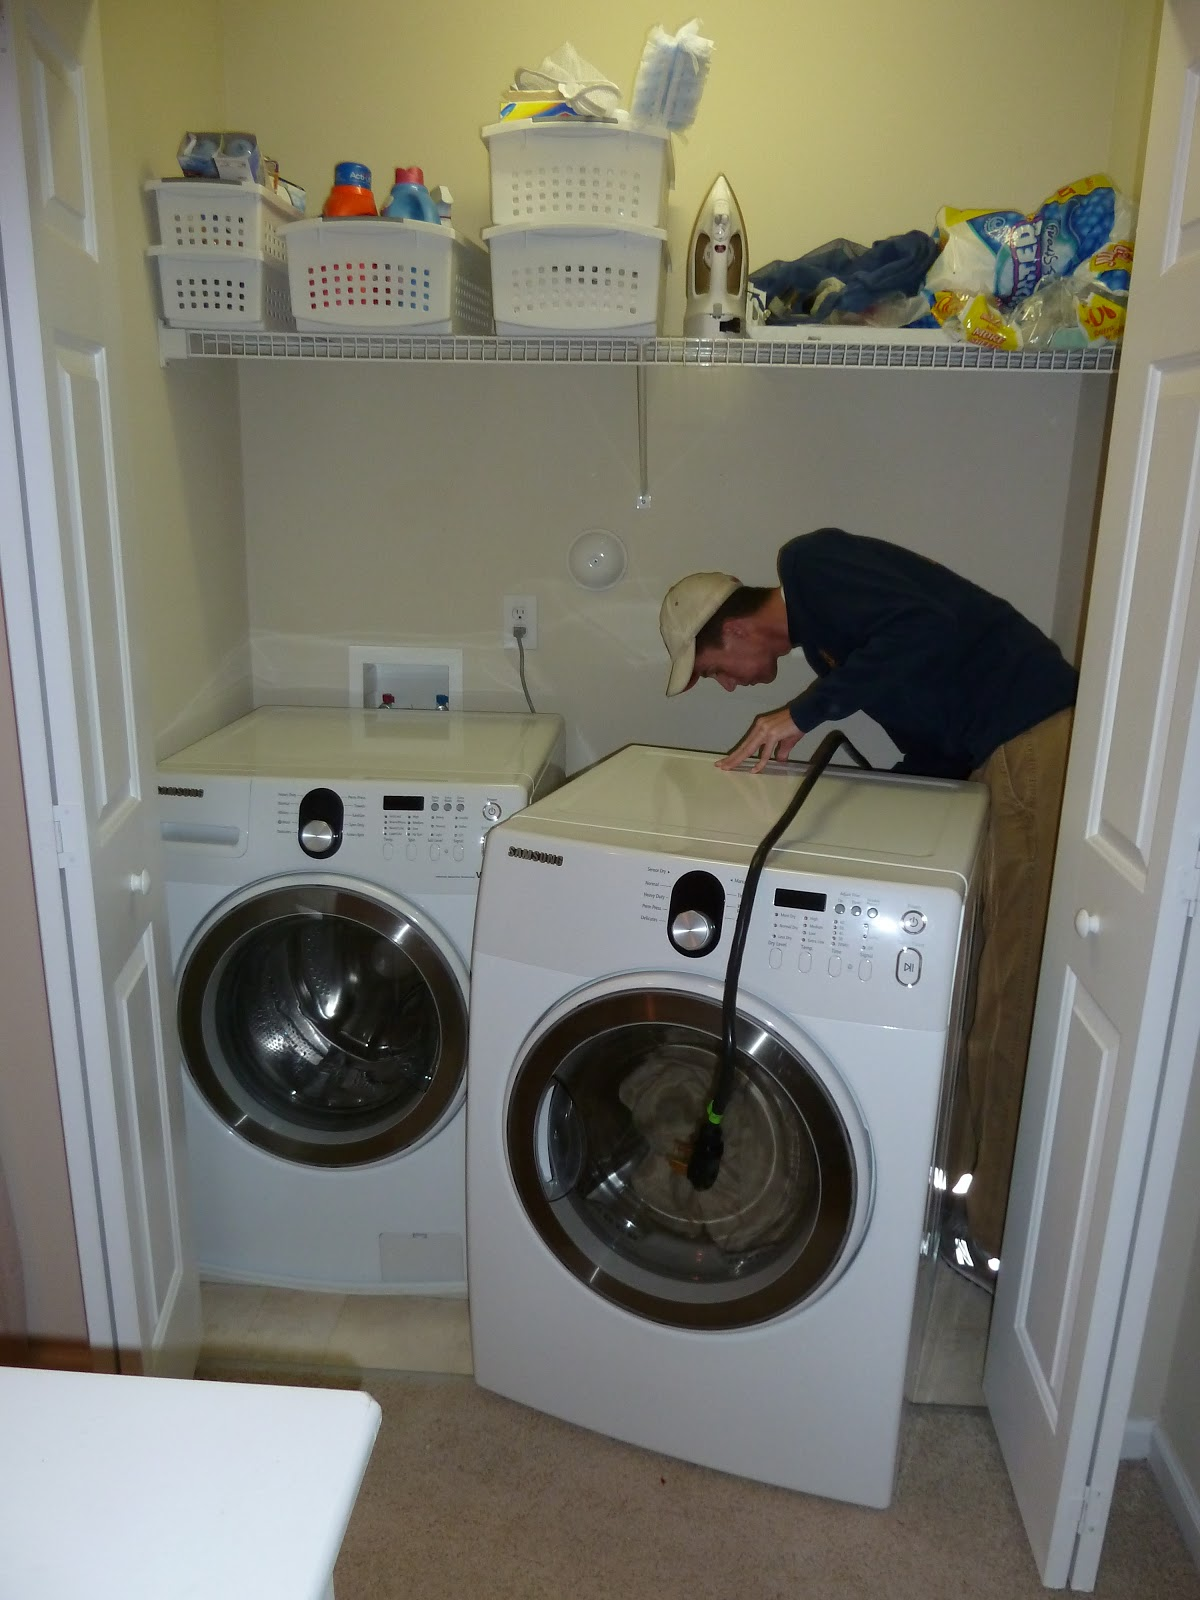 Dryer Installation Service : Washer and dryers how to install dryer